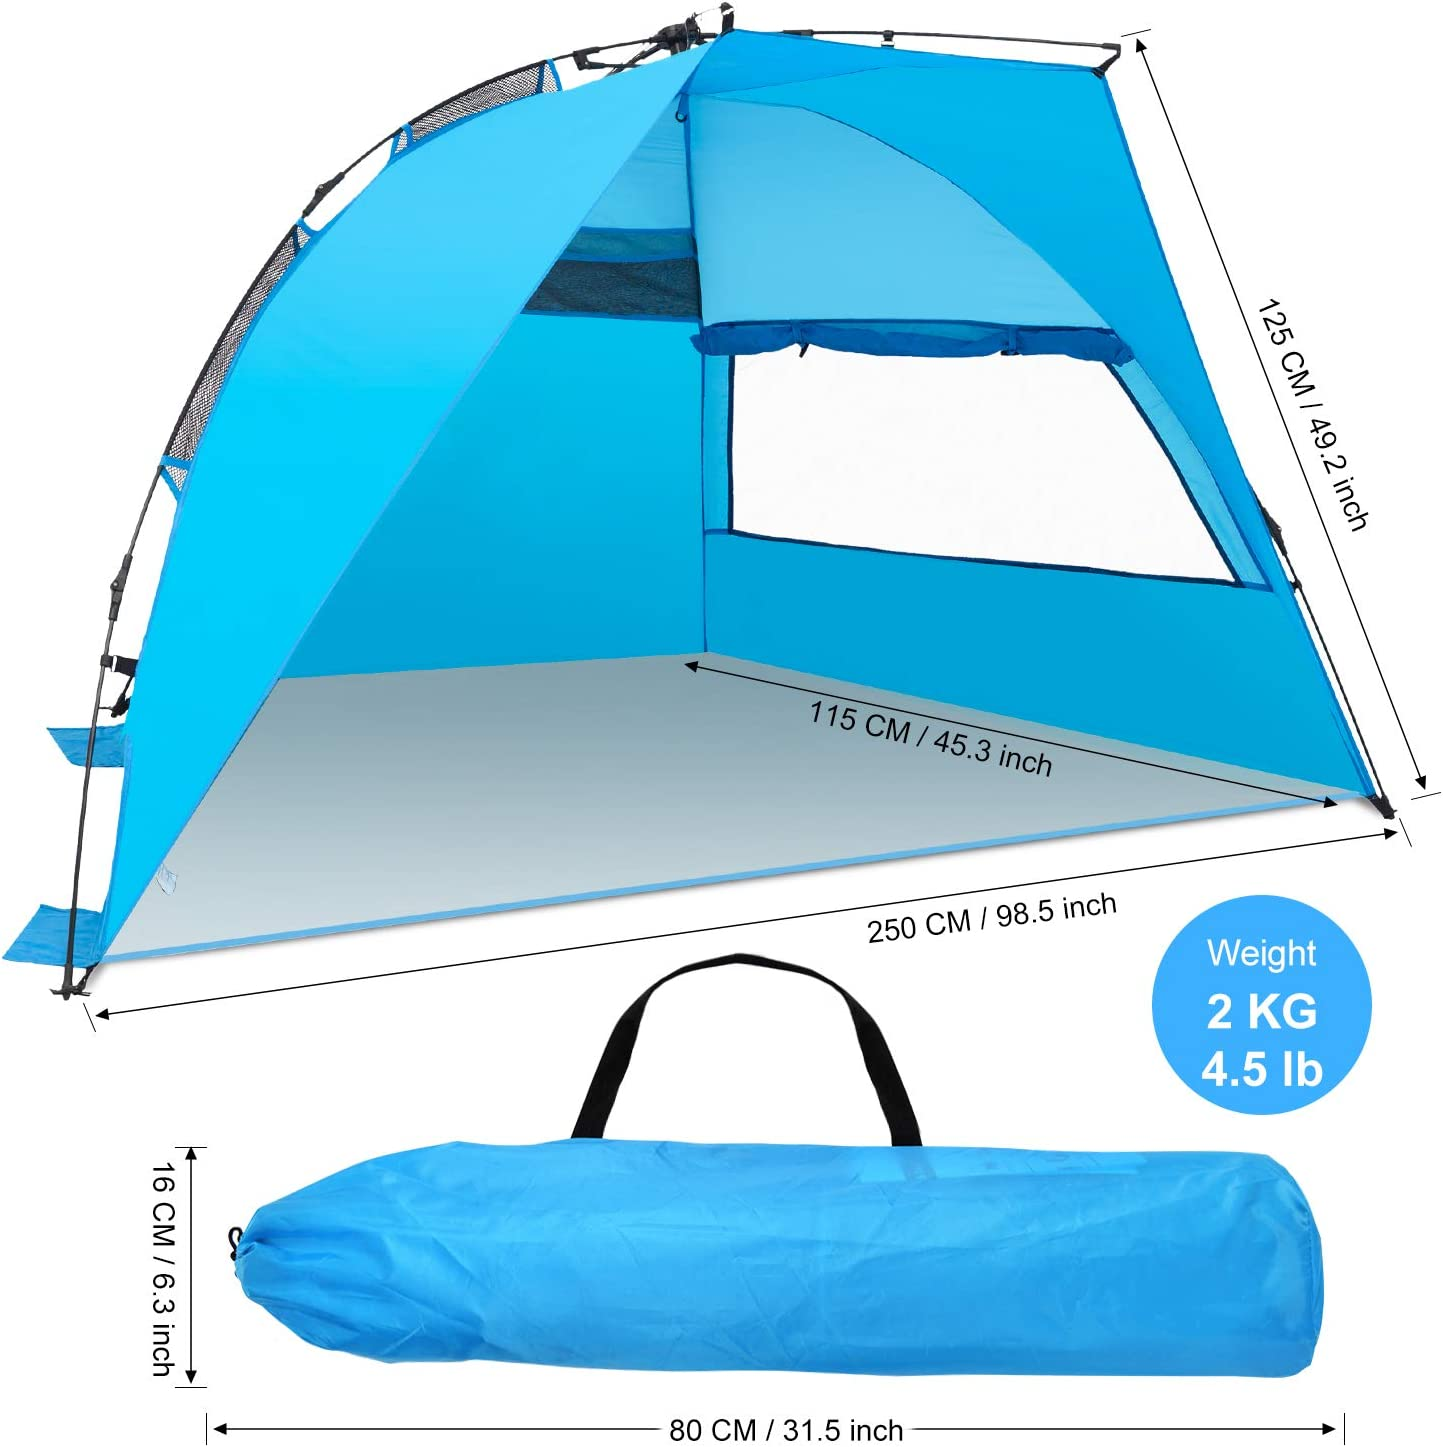 Picnic Fishing Camping Wesimplelife Automatic Beach Tent Sun Shelter 4 Person Outdoors Instant Beach Shelter Tent UPF 50+ UV Protection Sun Shade Tent with Windows Windproof for Beach